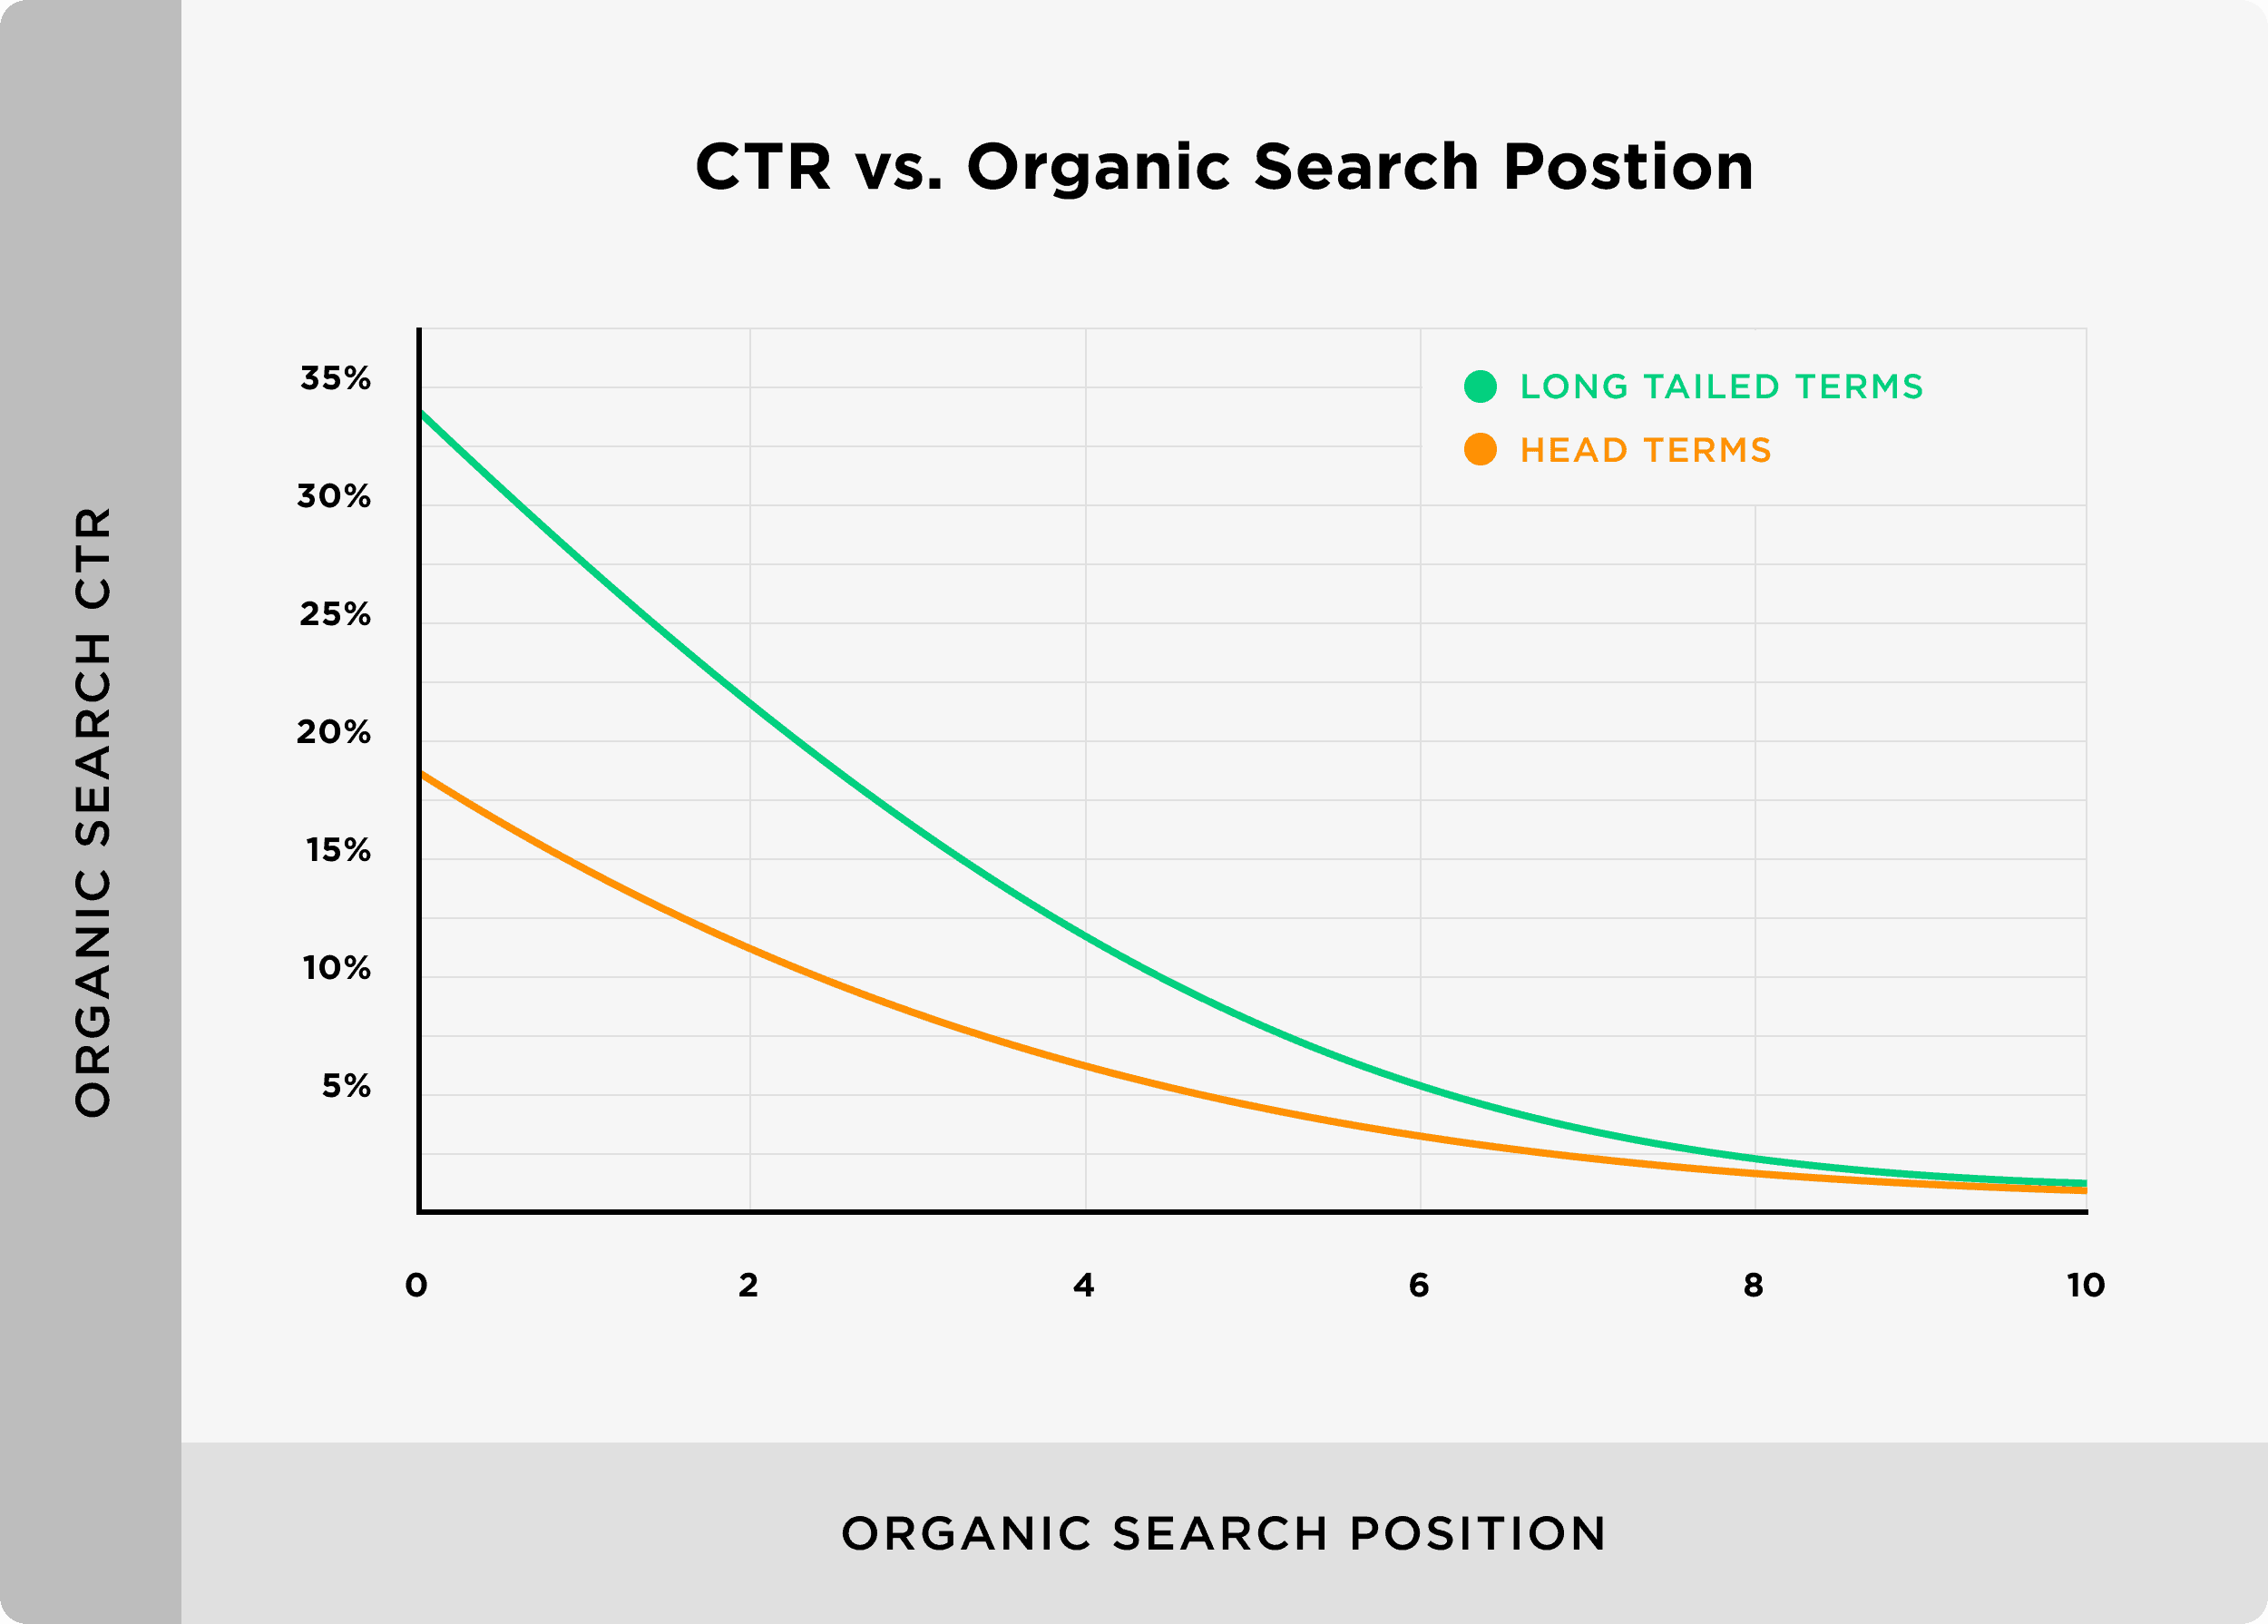 CTR vs organic search position